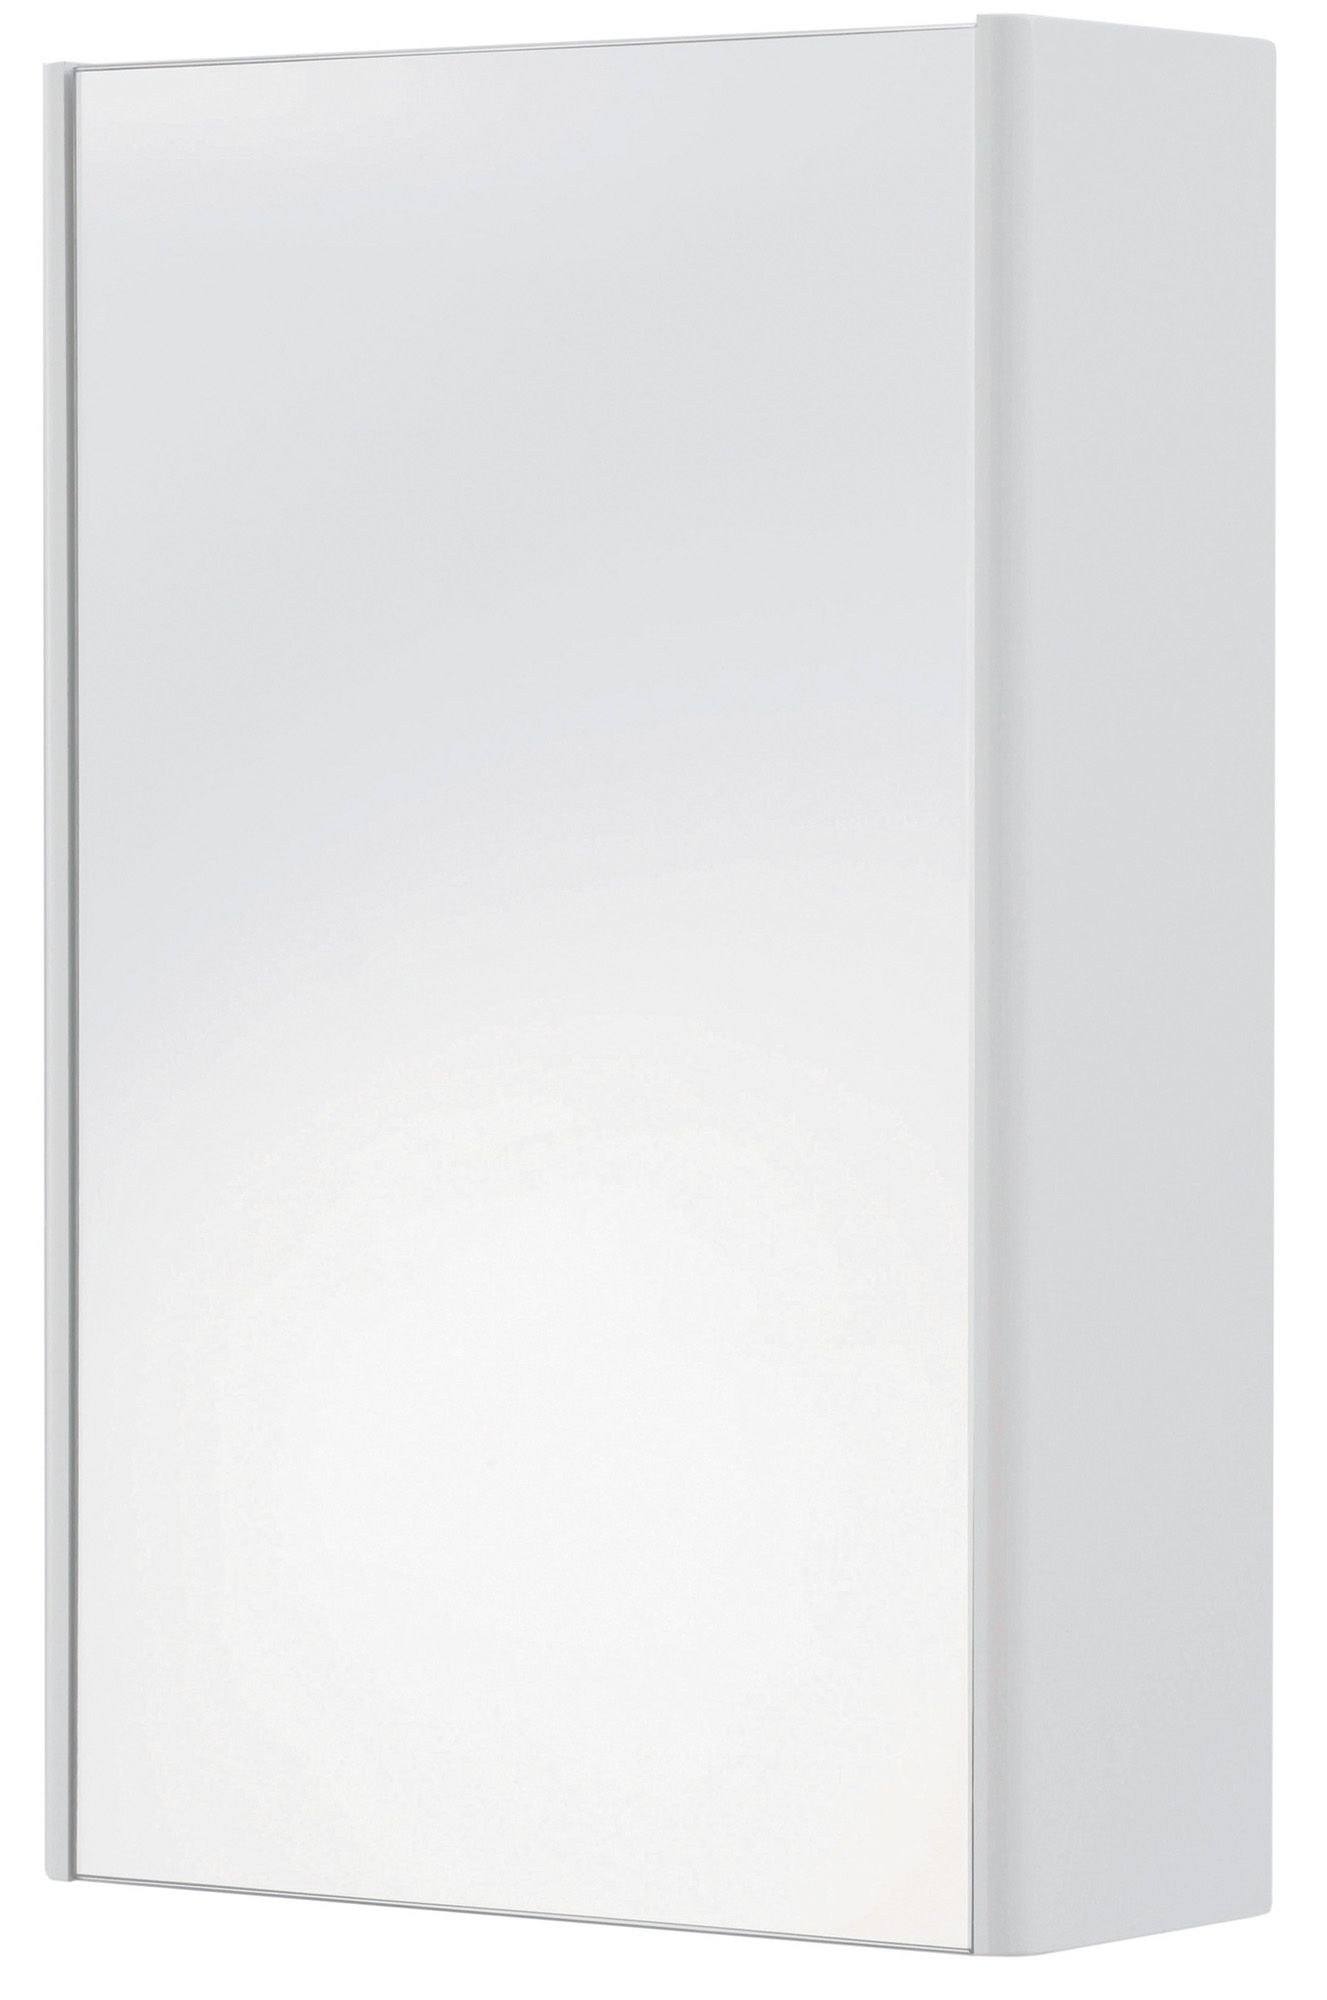 Cooke & Lewis Tobique Single Door White Mirror Cabinet